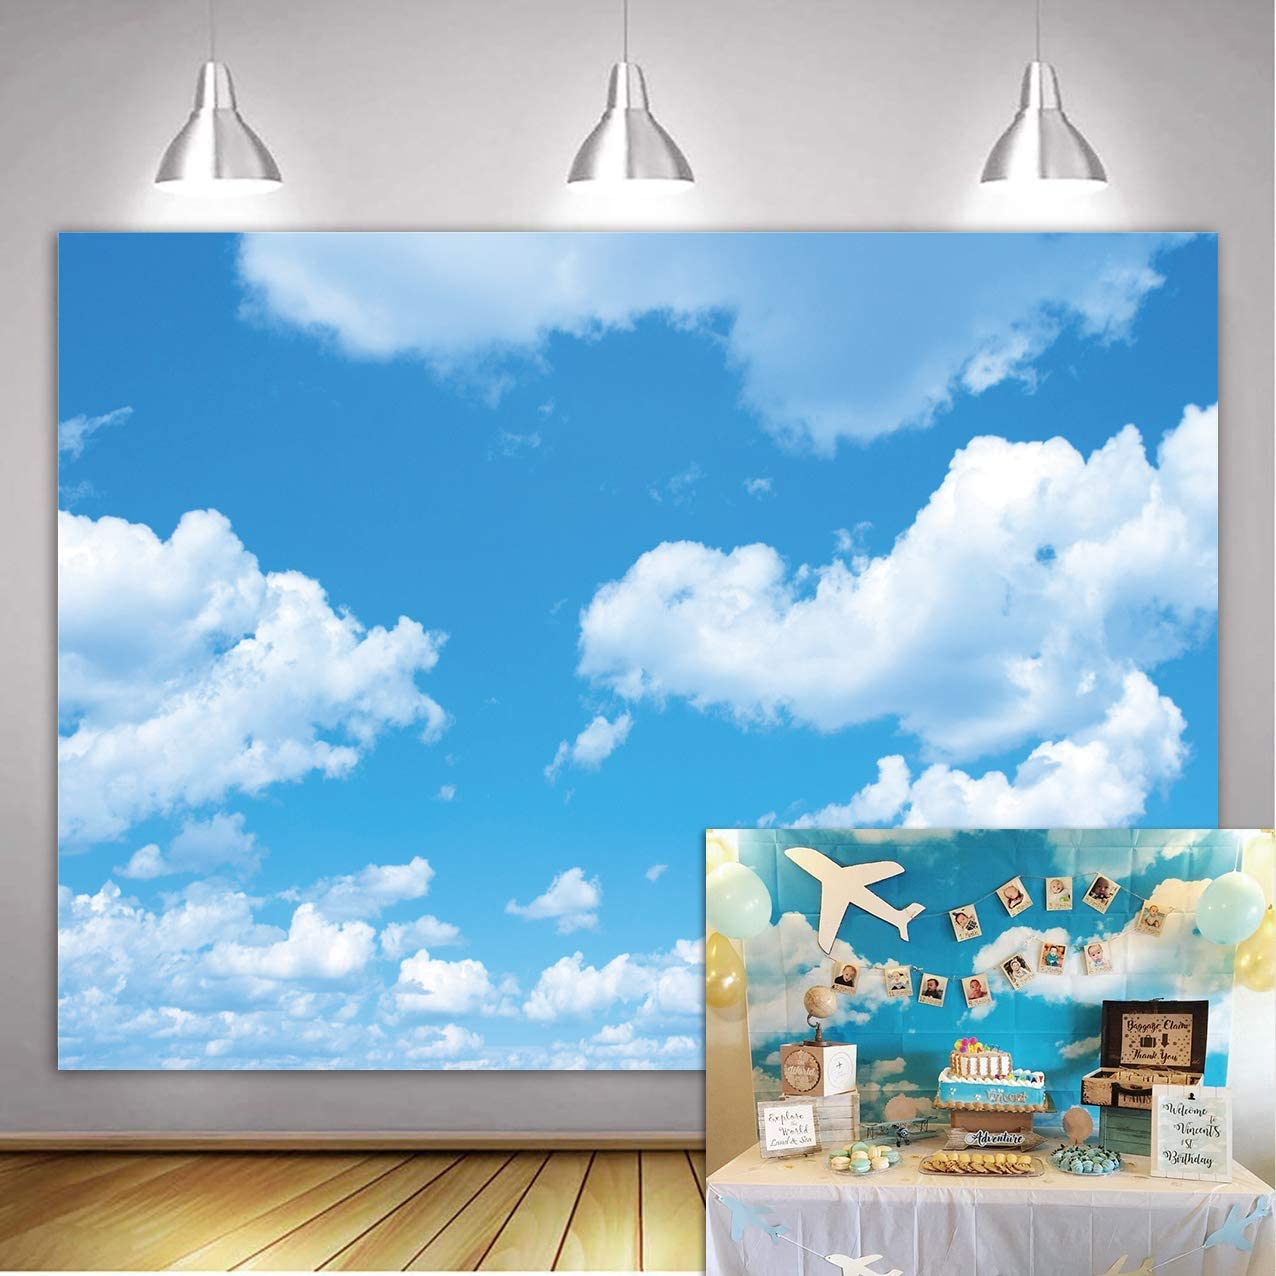 GYA 9x6ft Blue Sky White Clouds Theme Photography Backdrop Sunshine Sky Clouds Photo Background Booth Wedding Party Decoration Background Studio Props Vinyl